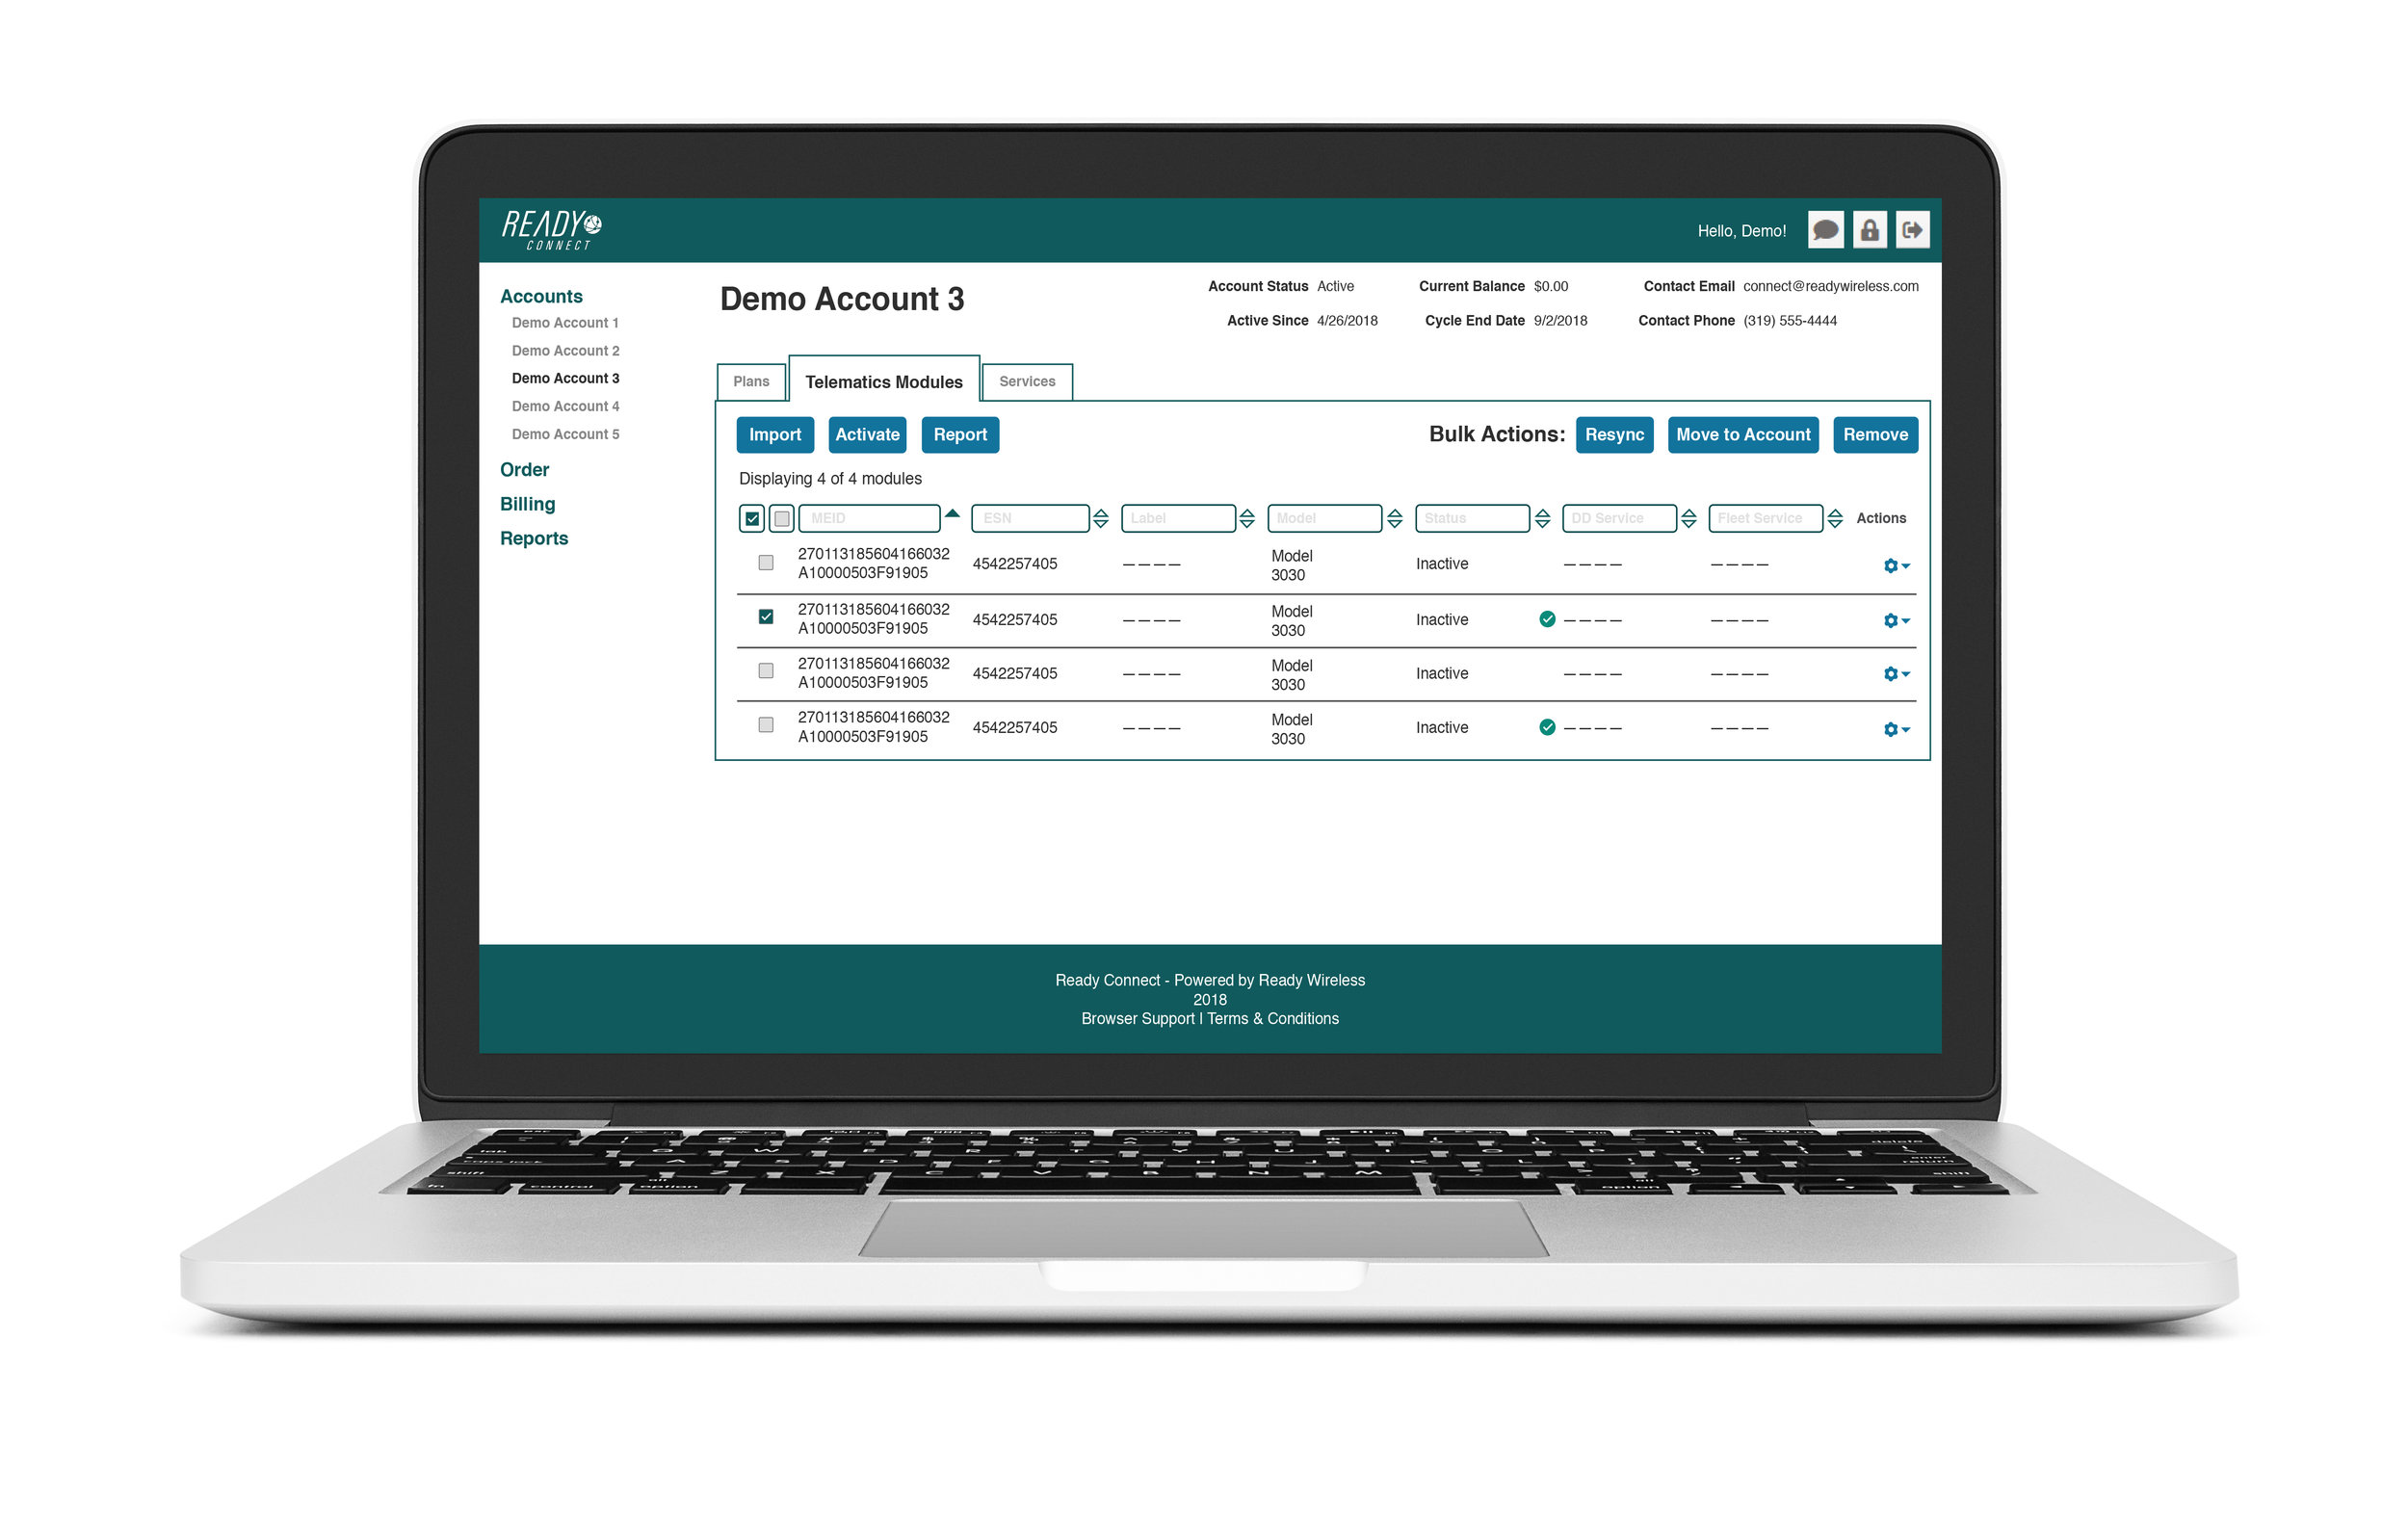 Billing, inventory management, provisioning, order management, reporting, and online help and system documentation is all contained in one easy-to-use portal.